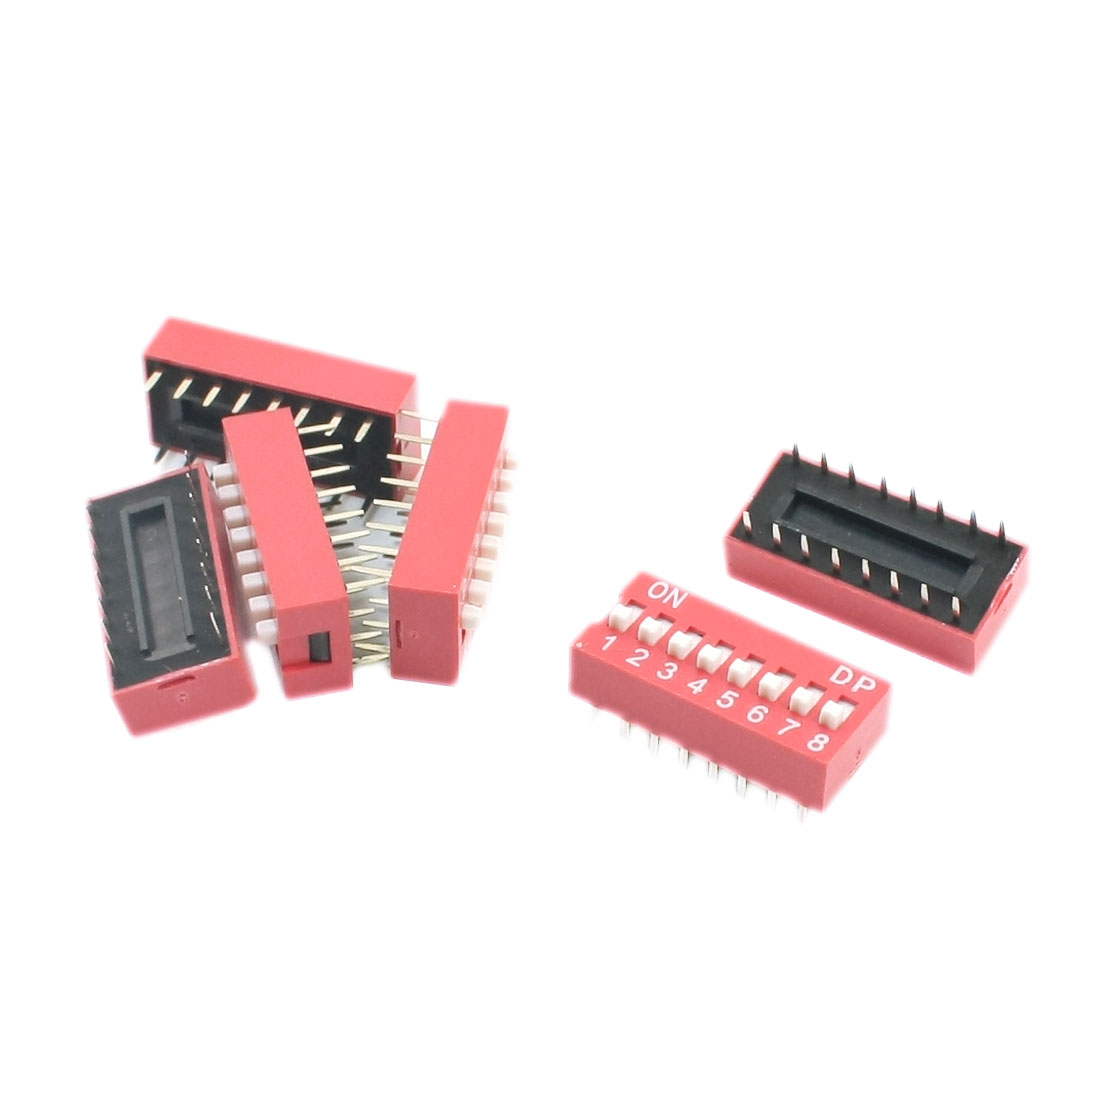 5Pcs 2.54mm Pitch Double Row 8-Bit 8-Position 16Pin Through Hole Mount PCB Slide Type DIP Switches Red